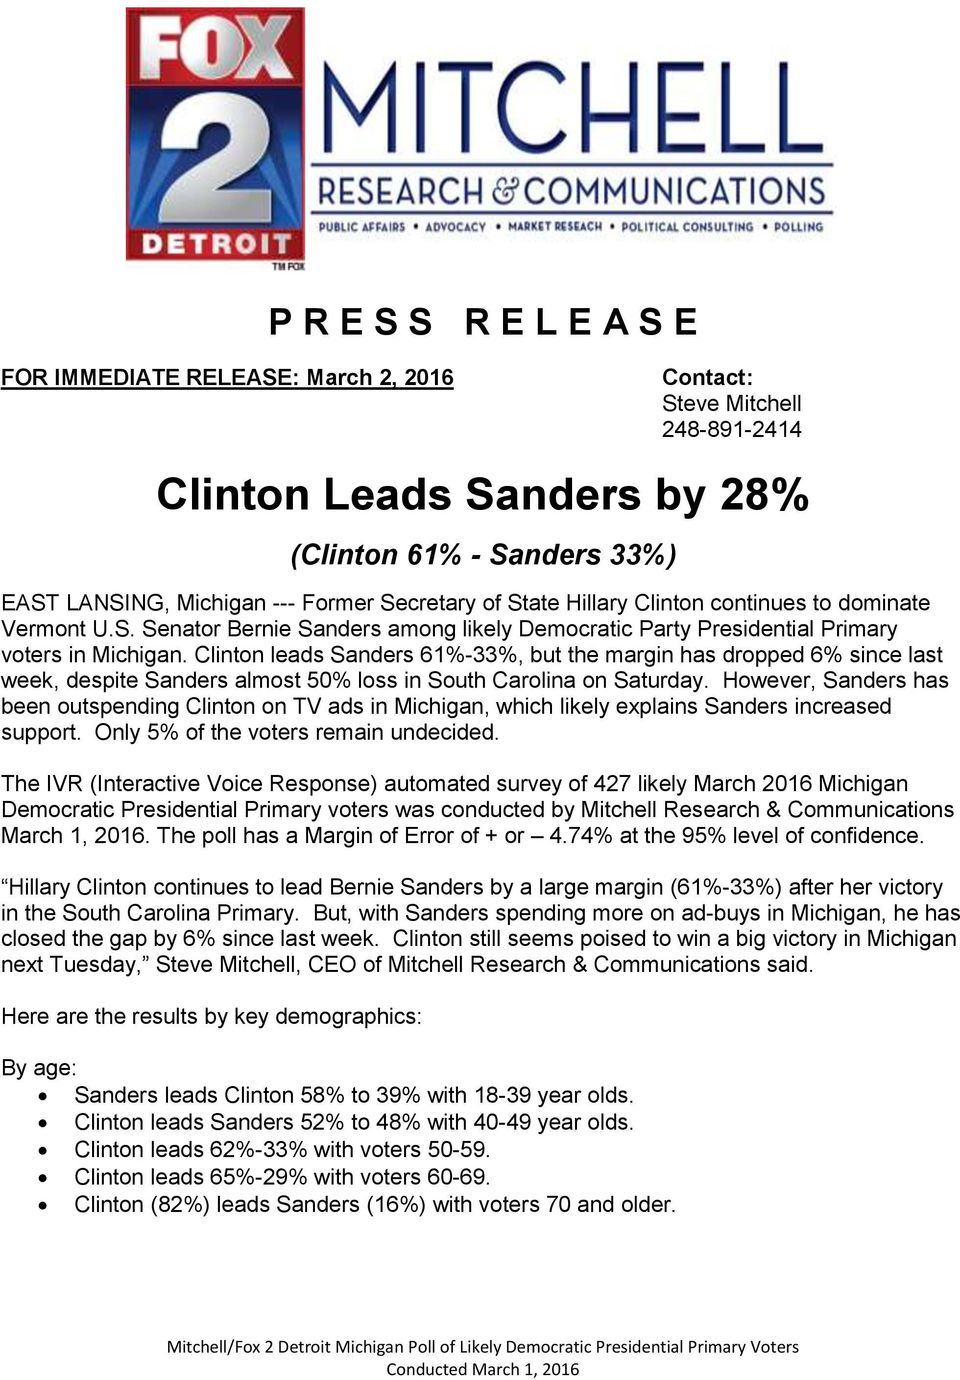 Clinton leads Sanders 61%-33%, but the margin has dropped 6% since last week, despite Sanders almost 50% loss in South Carolina on Saturday.